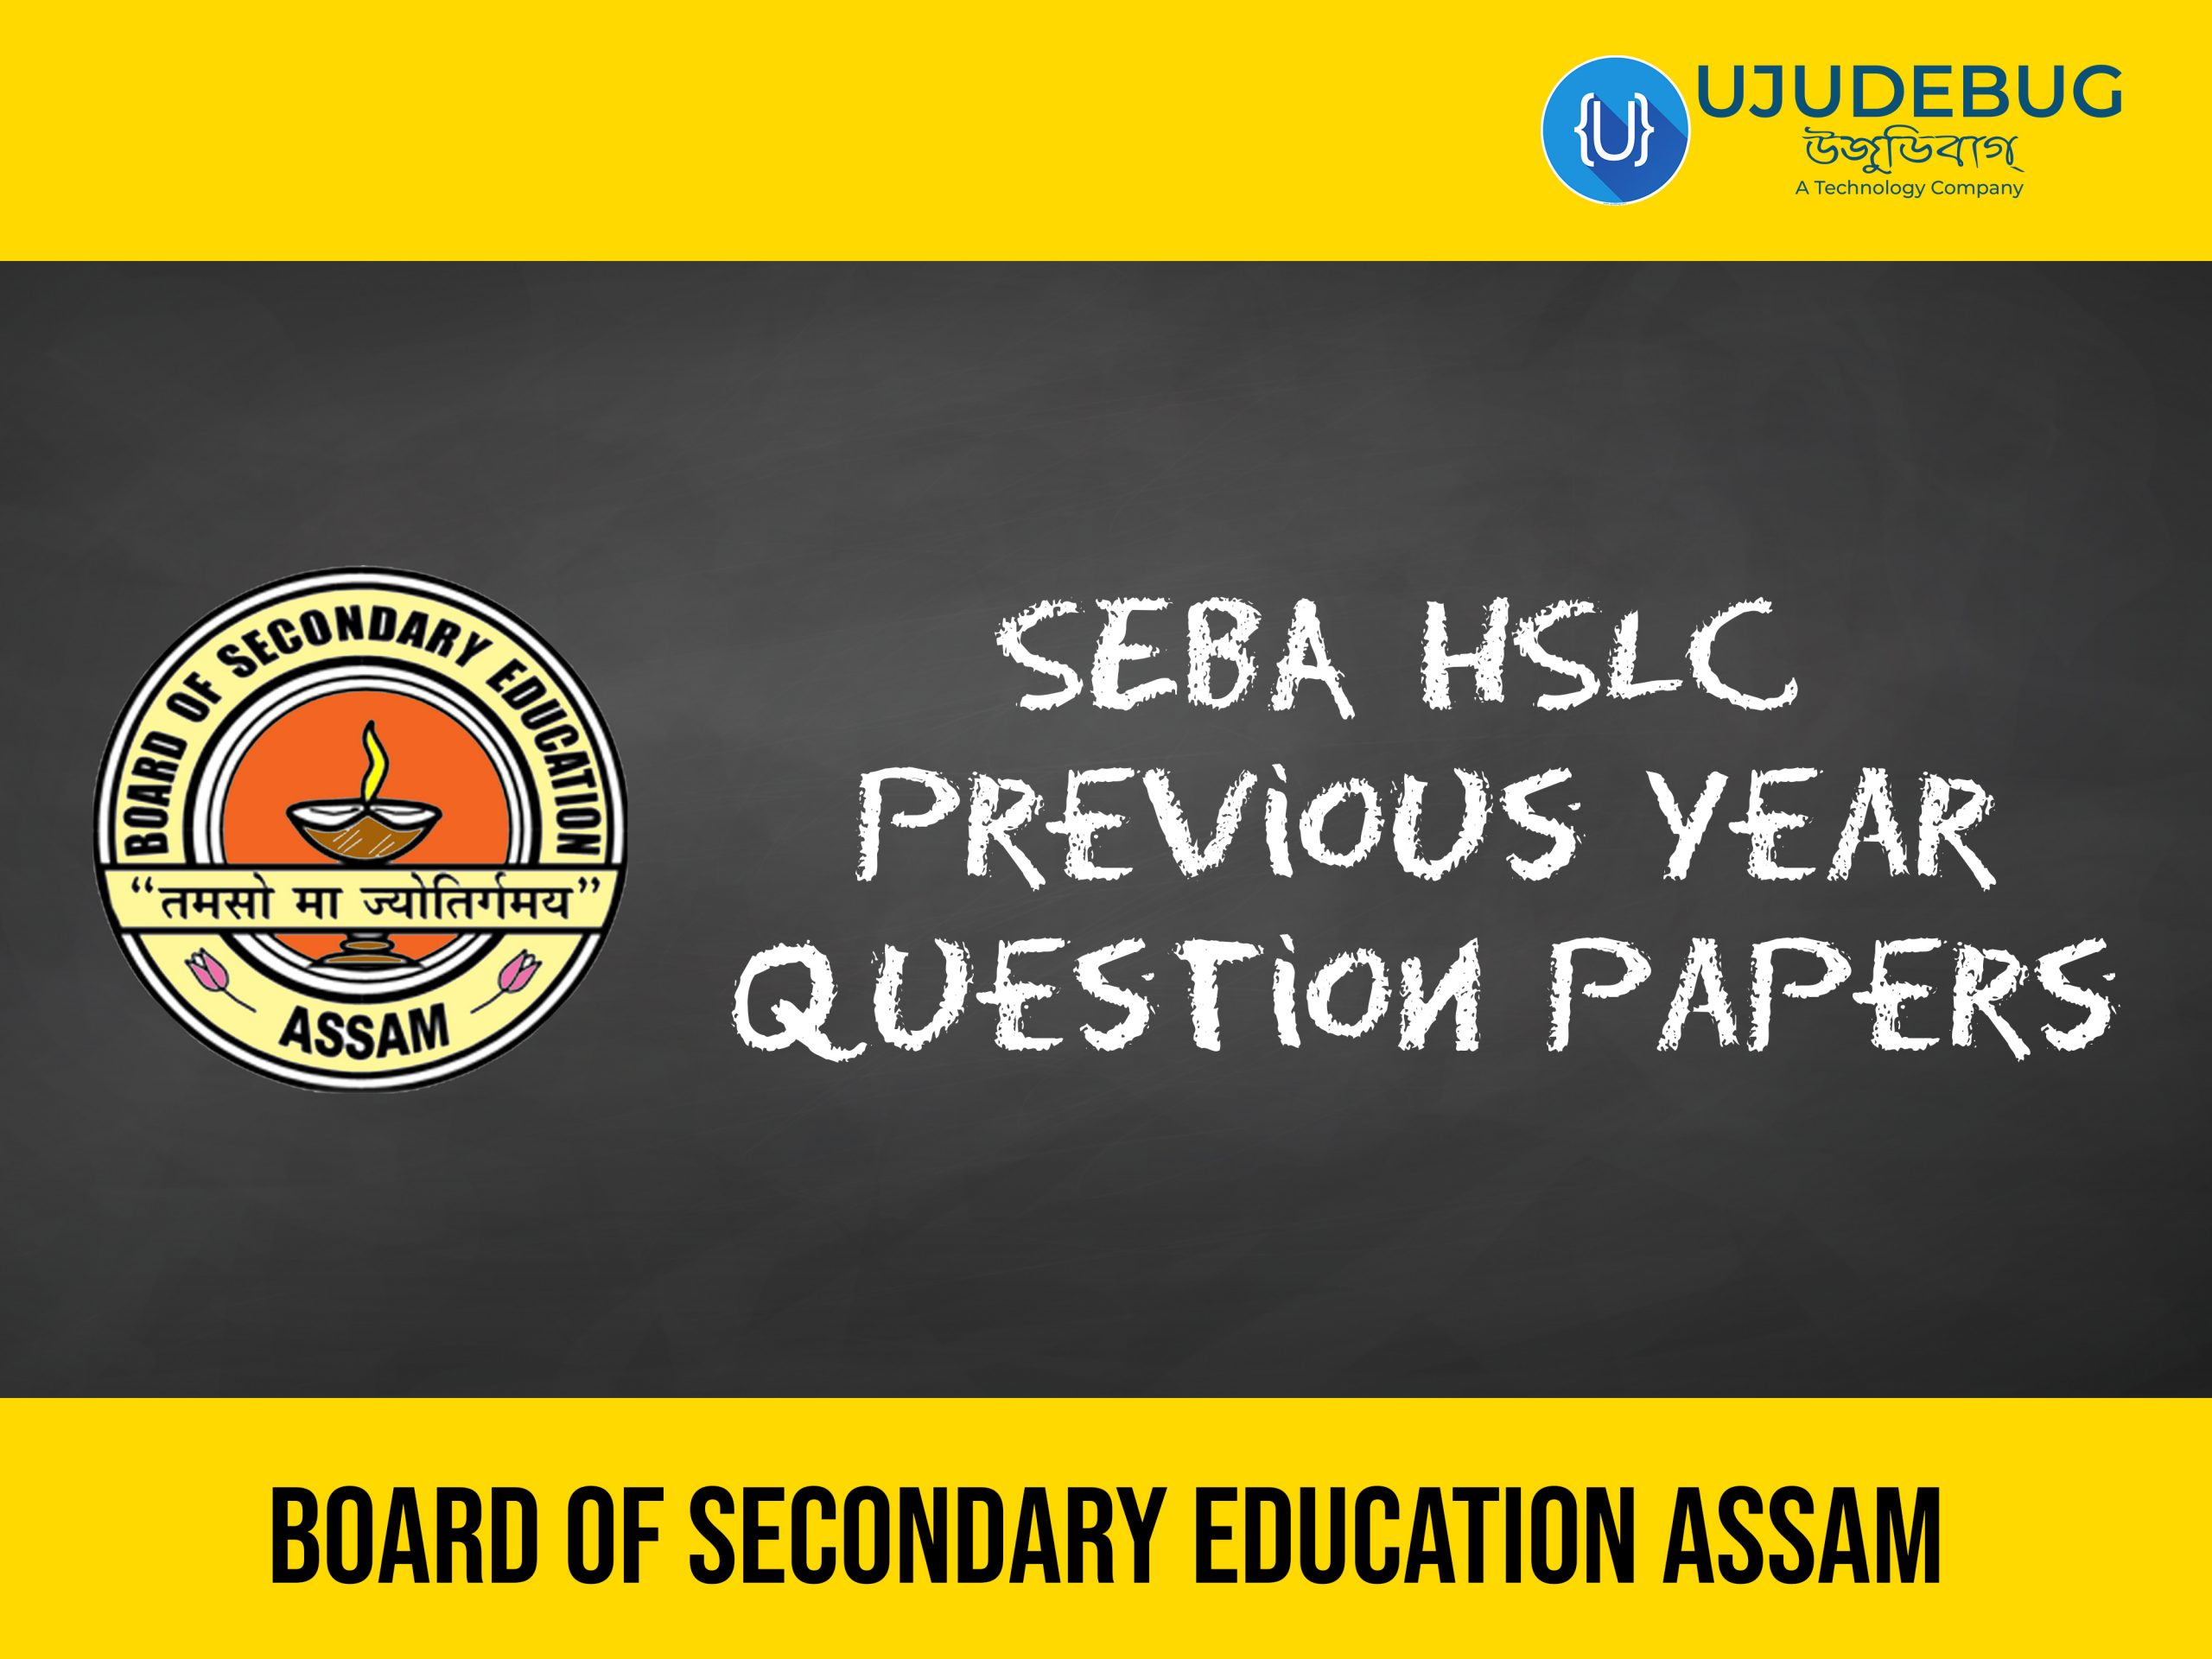 SEBA HSLC Previous Year Question Papers